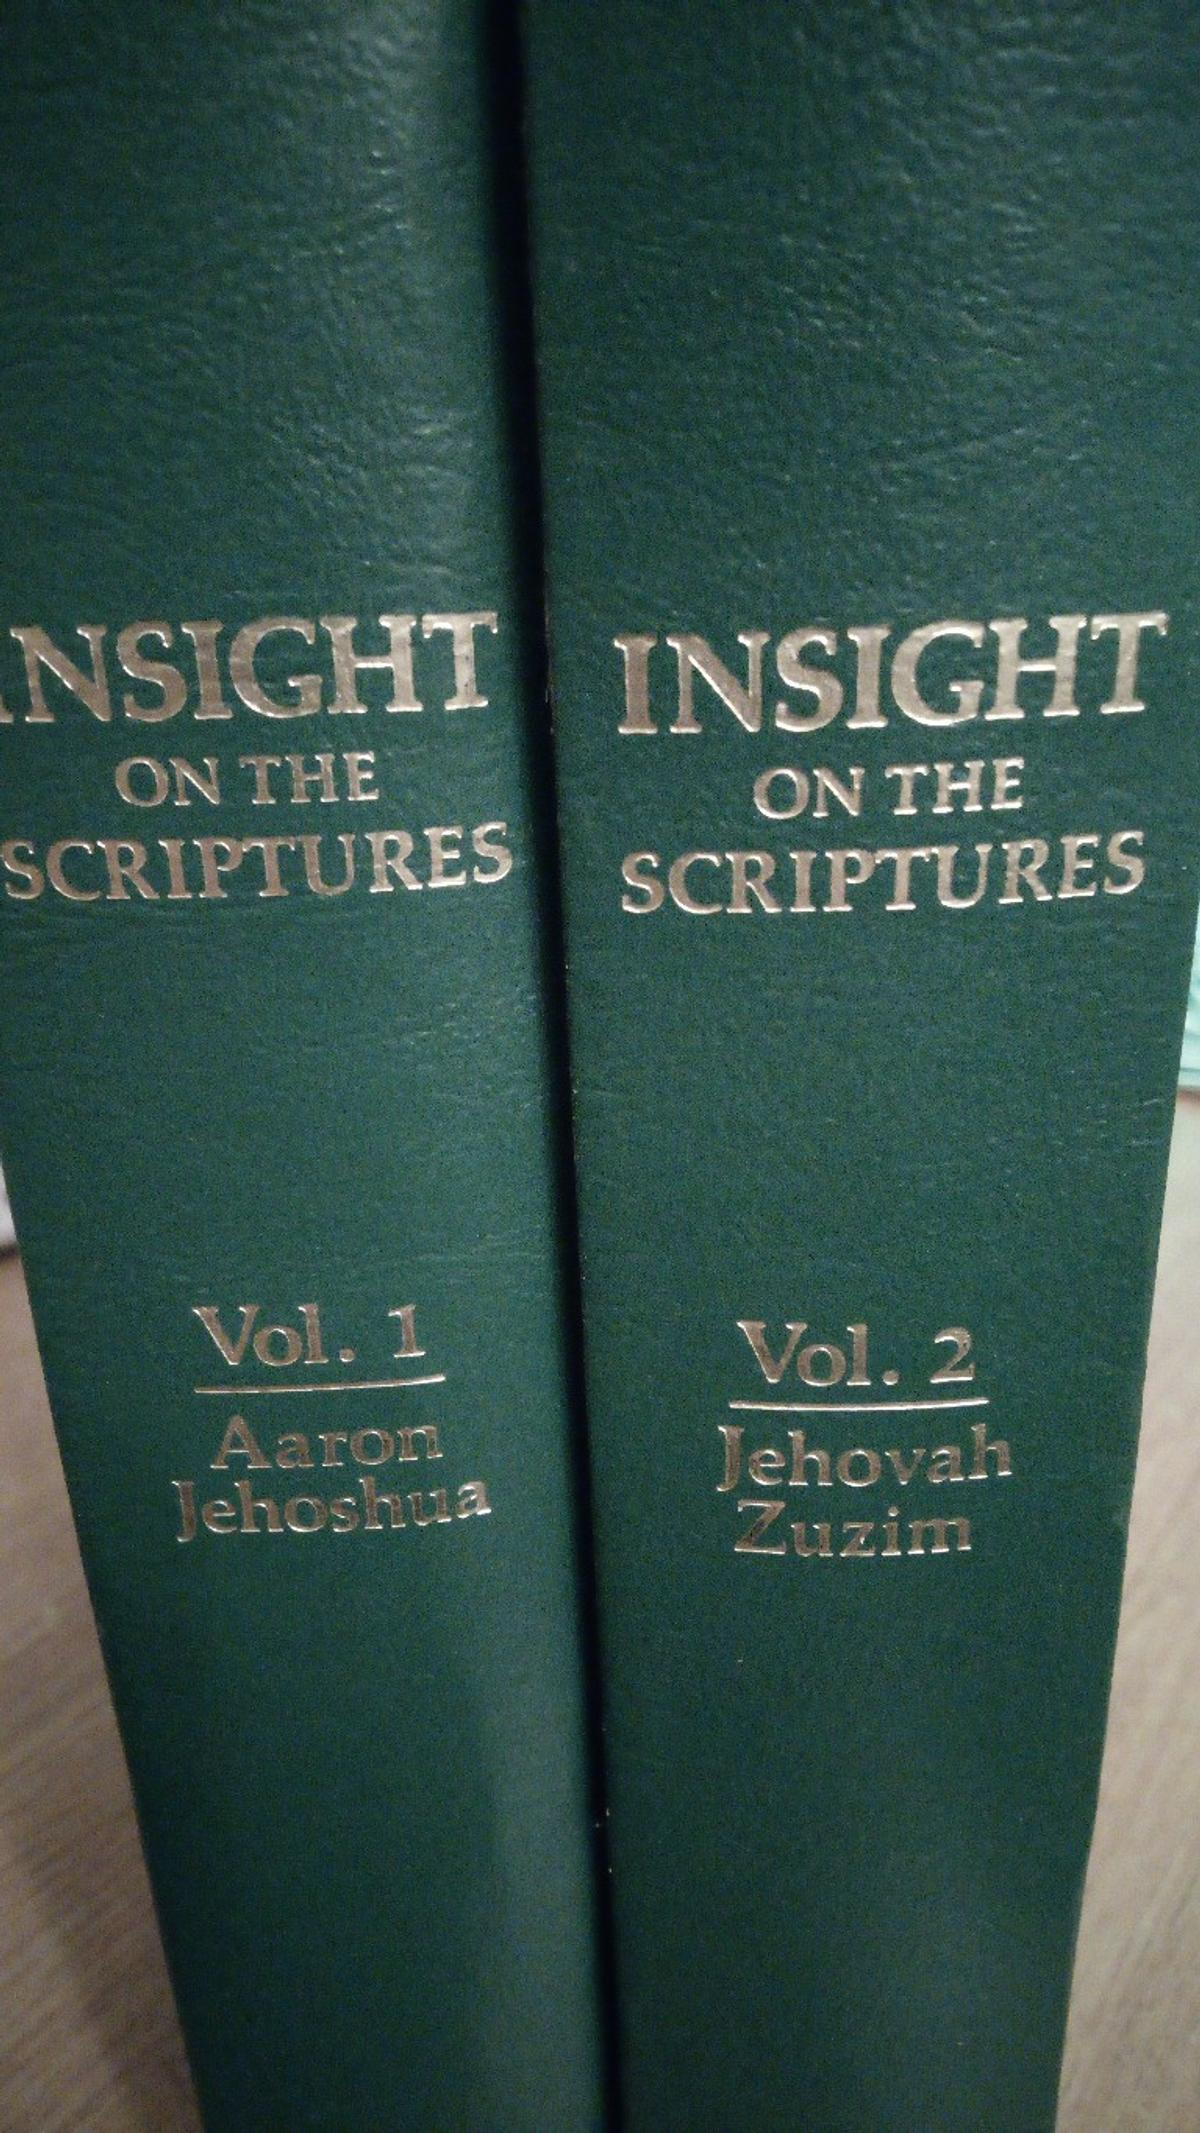 Volumes 1 and 2, big books, everything analysed in alphabetical order from the Holy Bible, names dates events, even items of historical finding are explained.